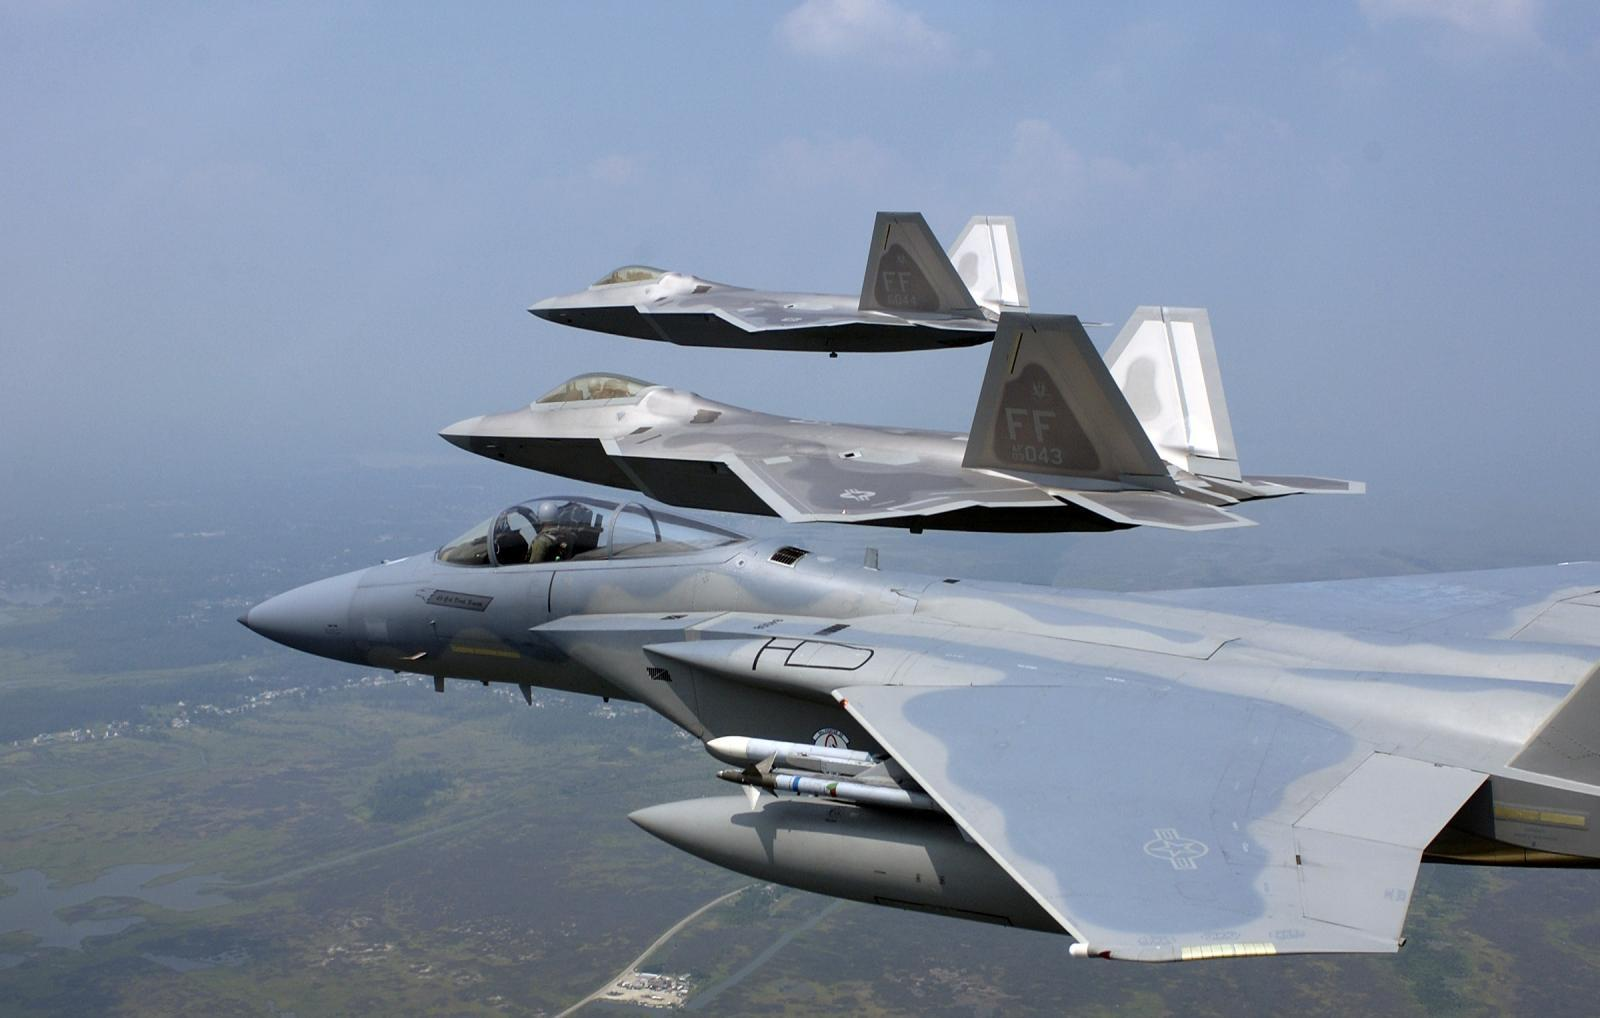 Aircraft military planes f-15 HD Wallpaper